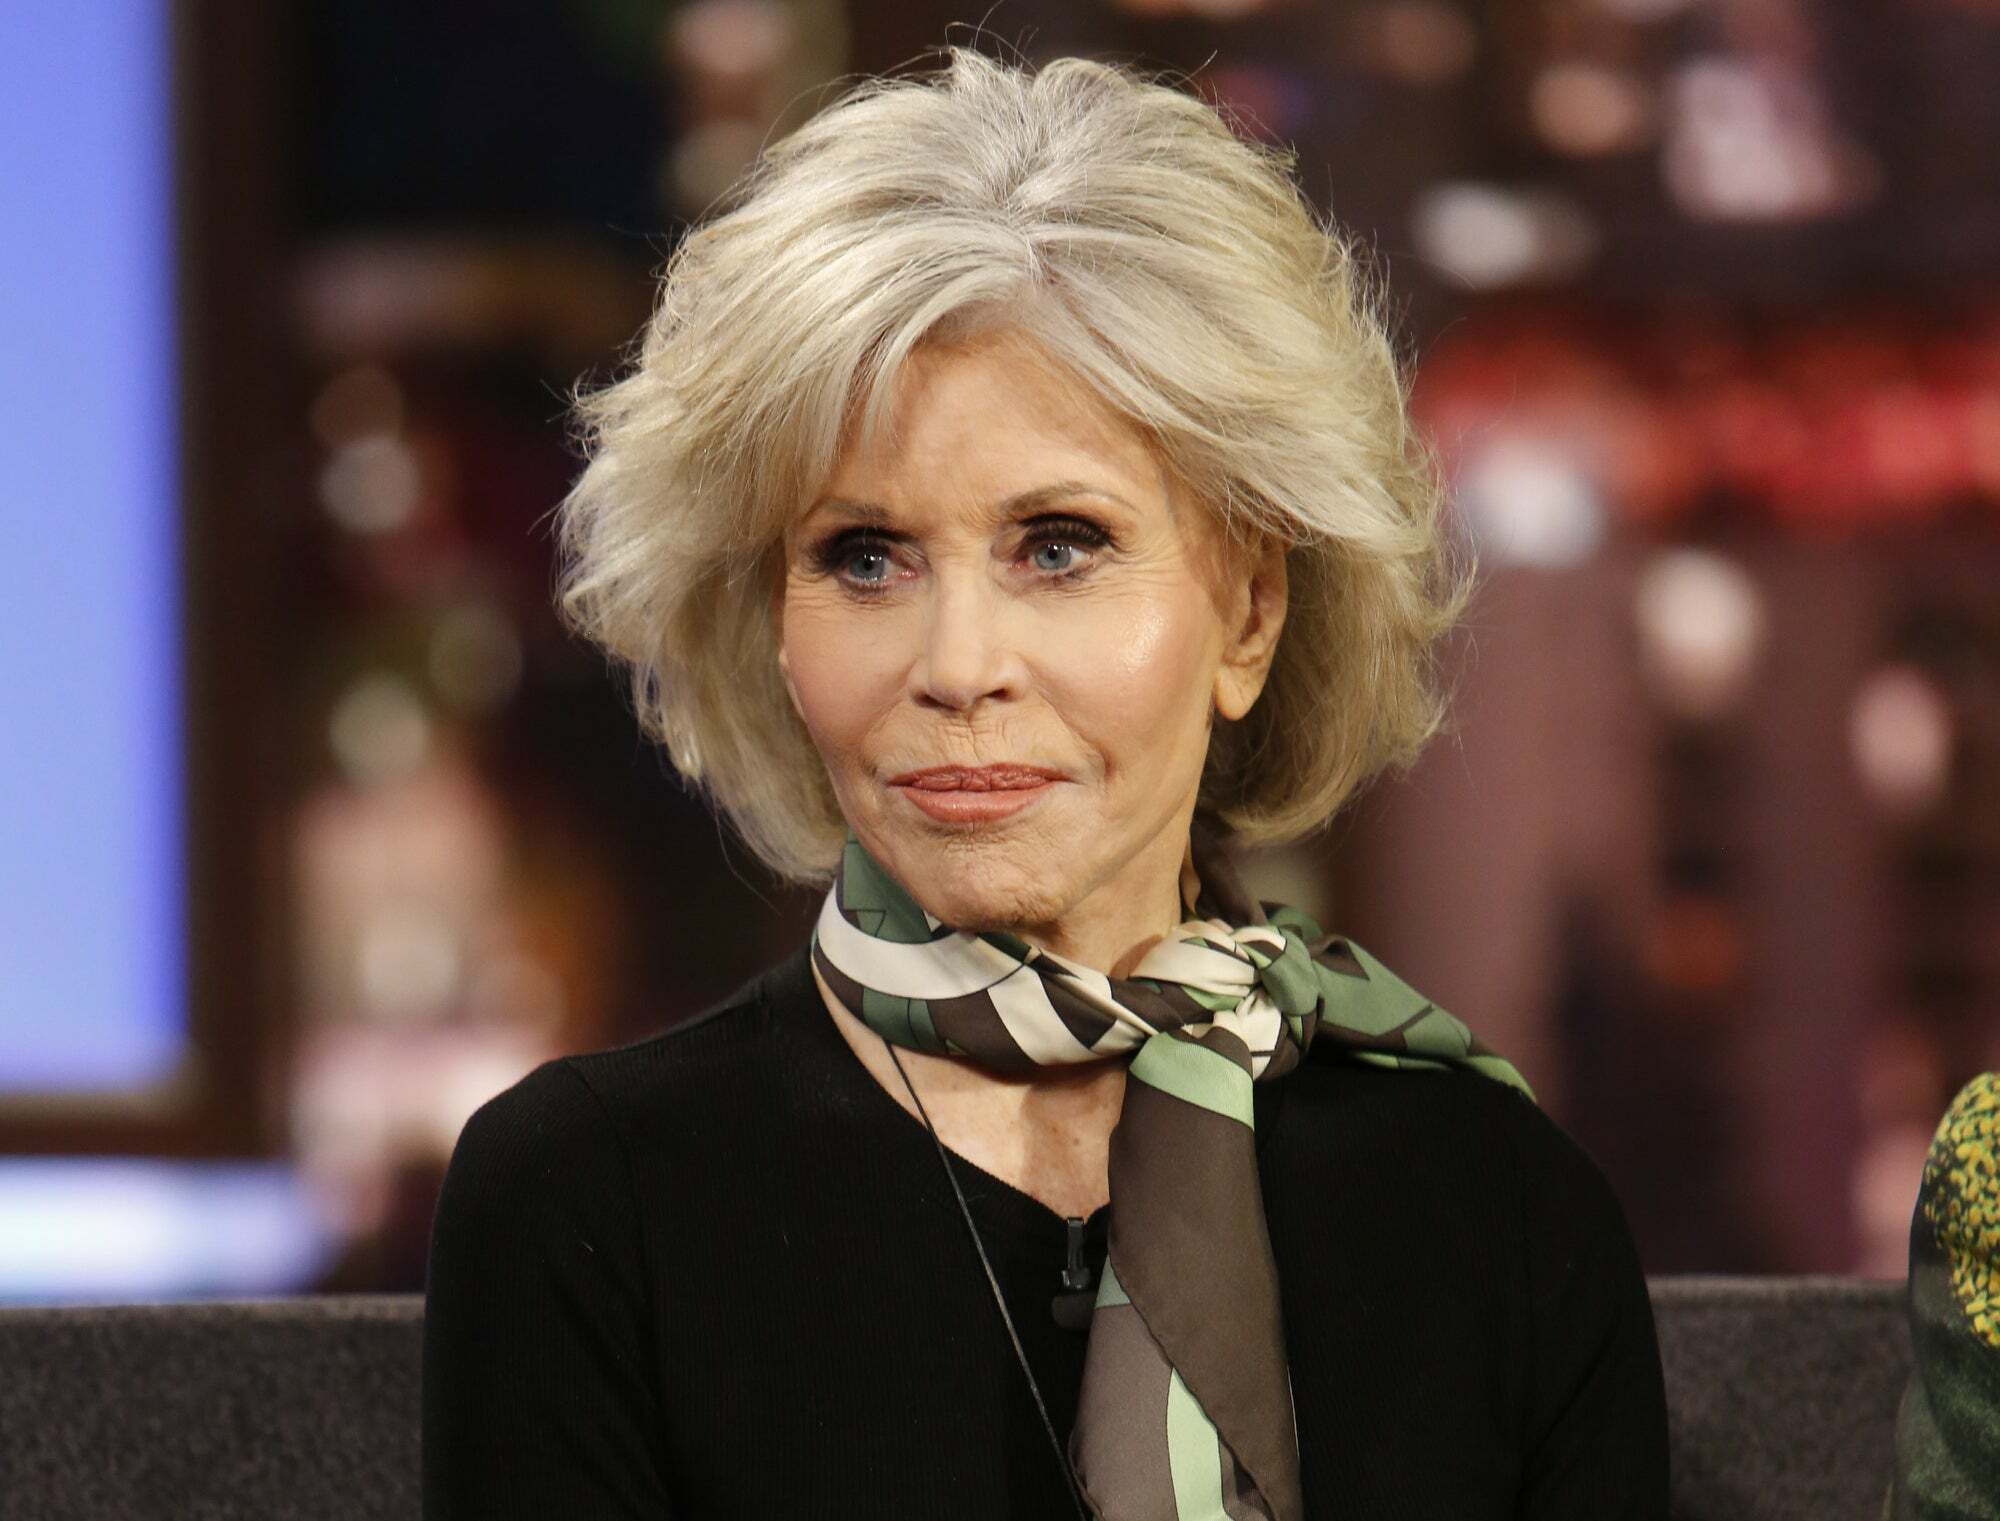 Jane Fonda won't have any sexual relationship unless it's a young man